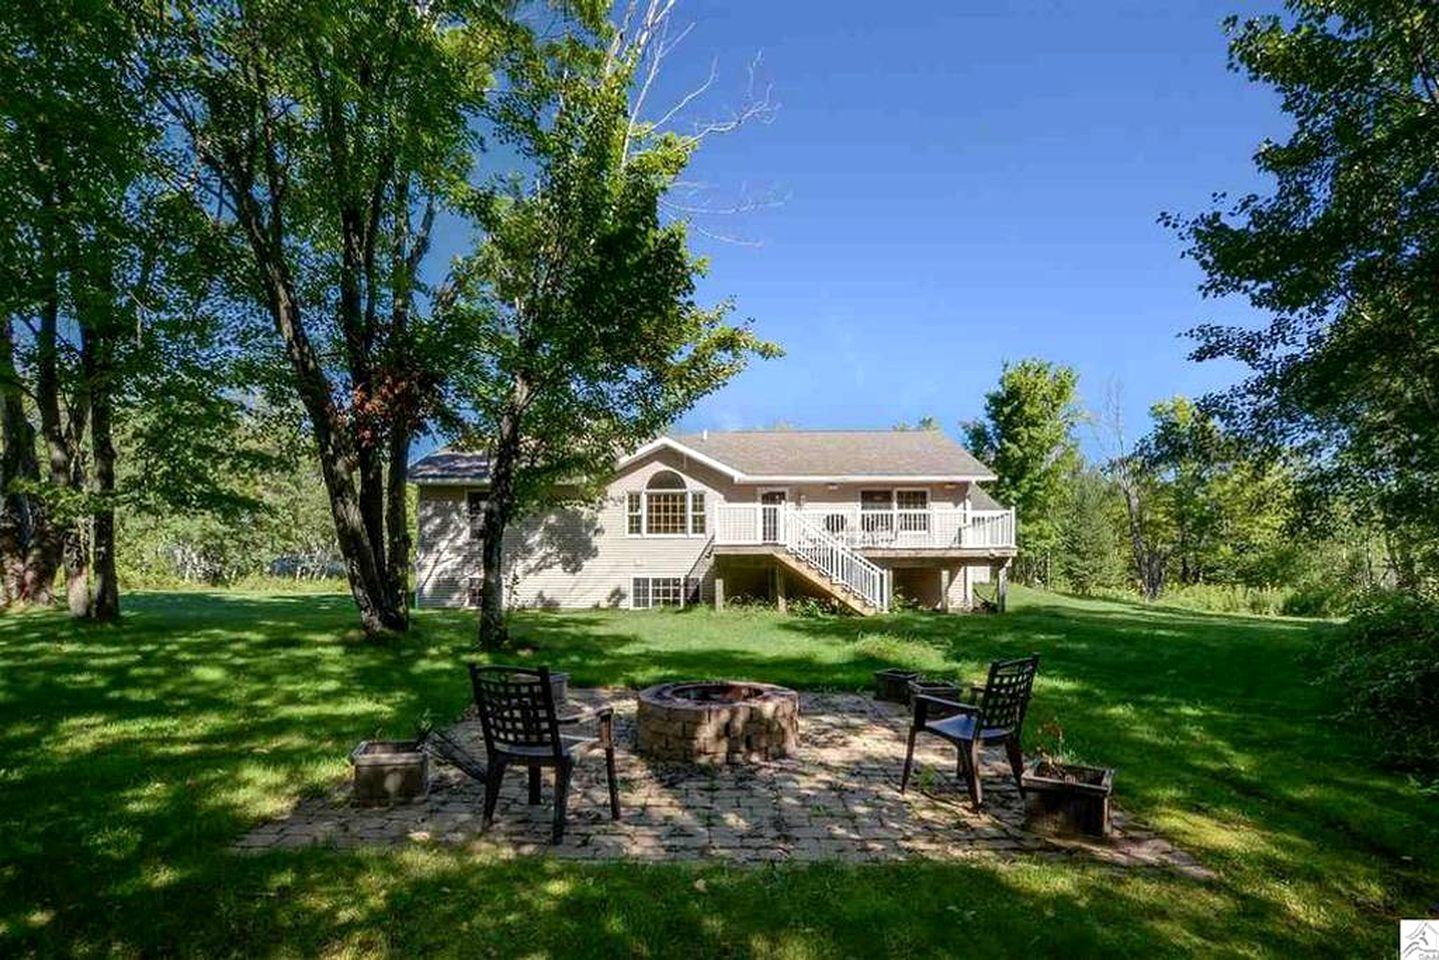 Vacation Rentals (Esko, Minnesota, United States)